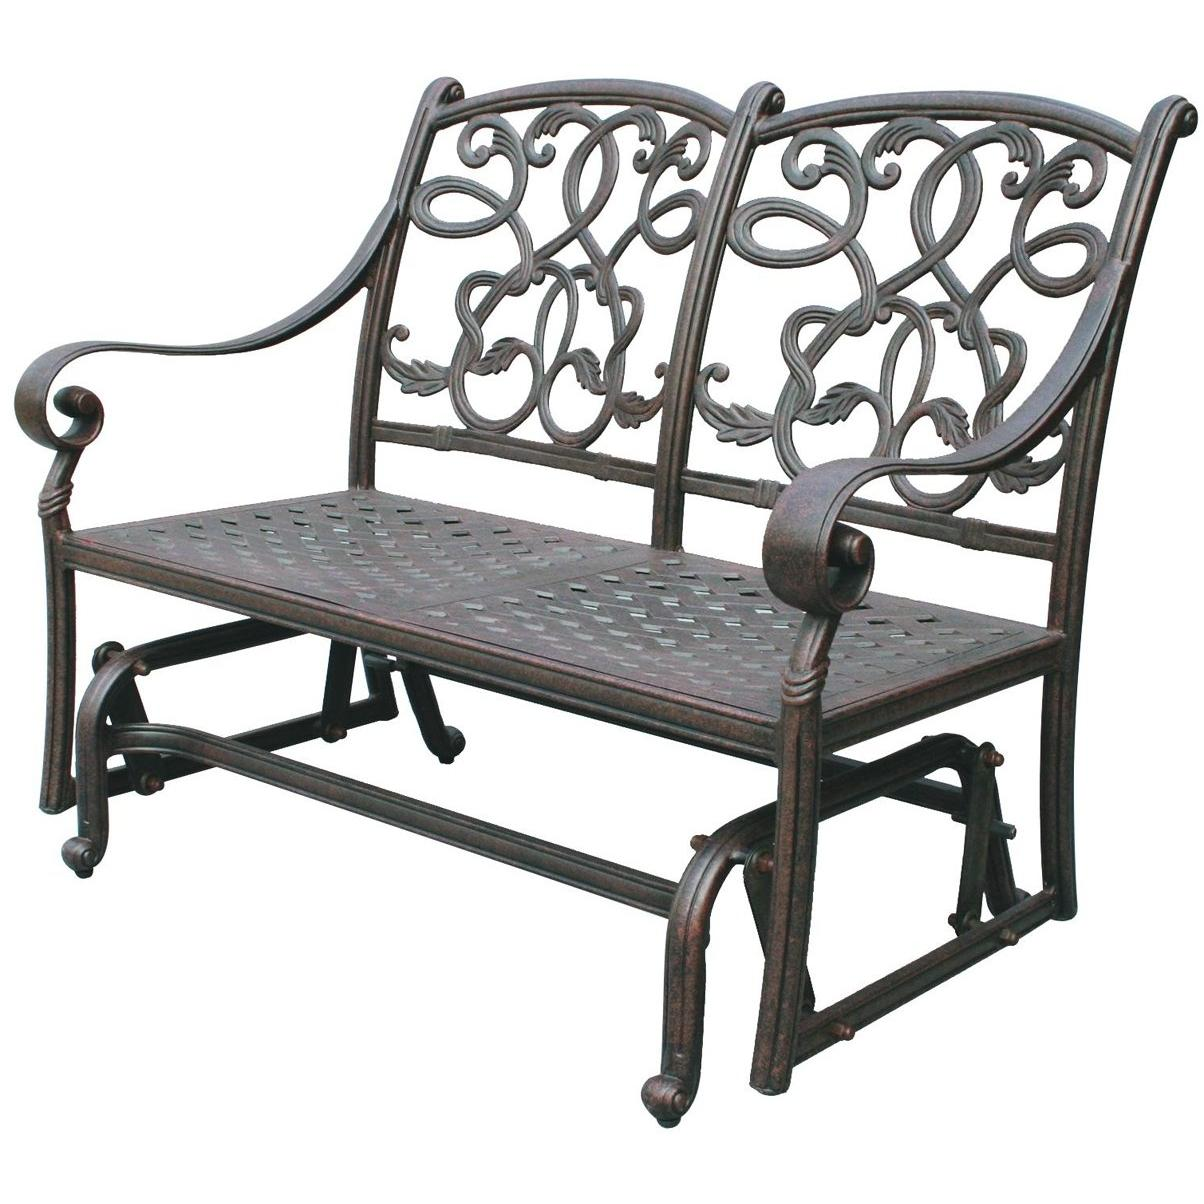 Darlee Santa Monica Cast Aluminum Outdoor Patio Loveseat Glider With Cushions - Antique Bronze